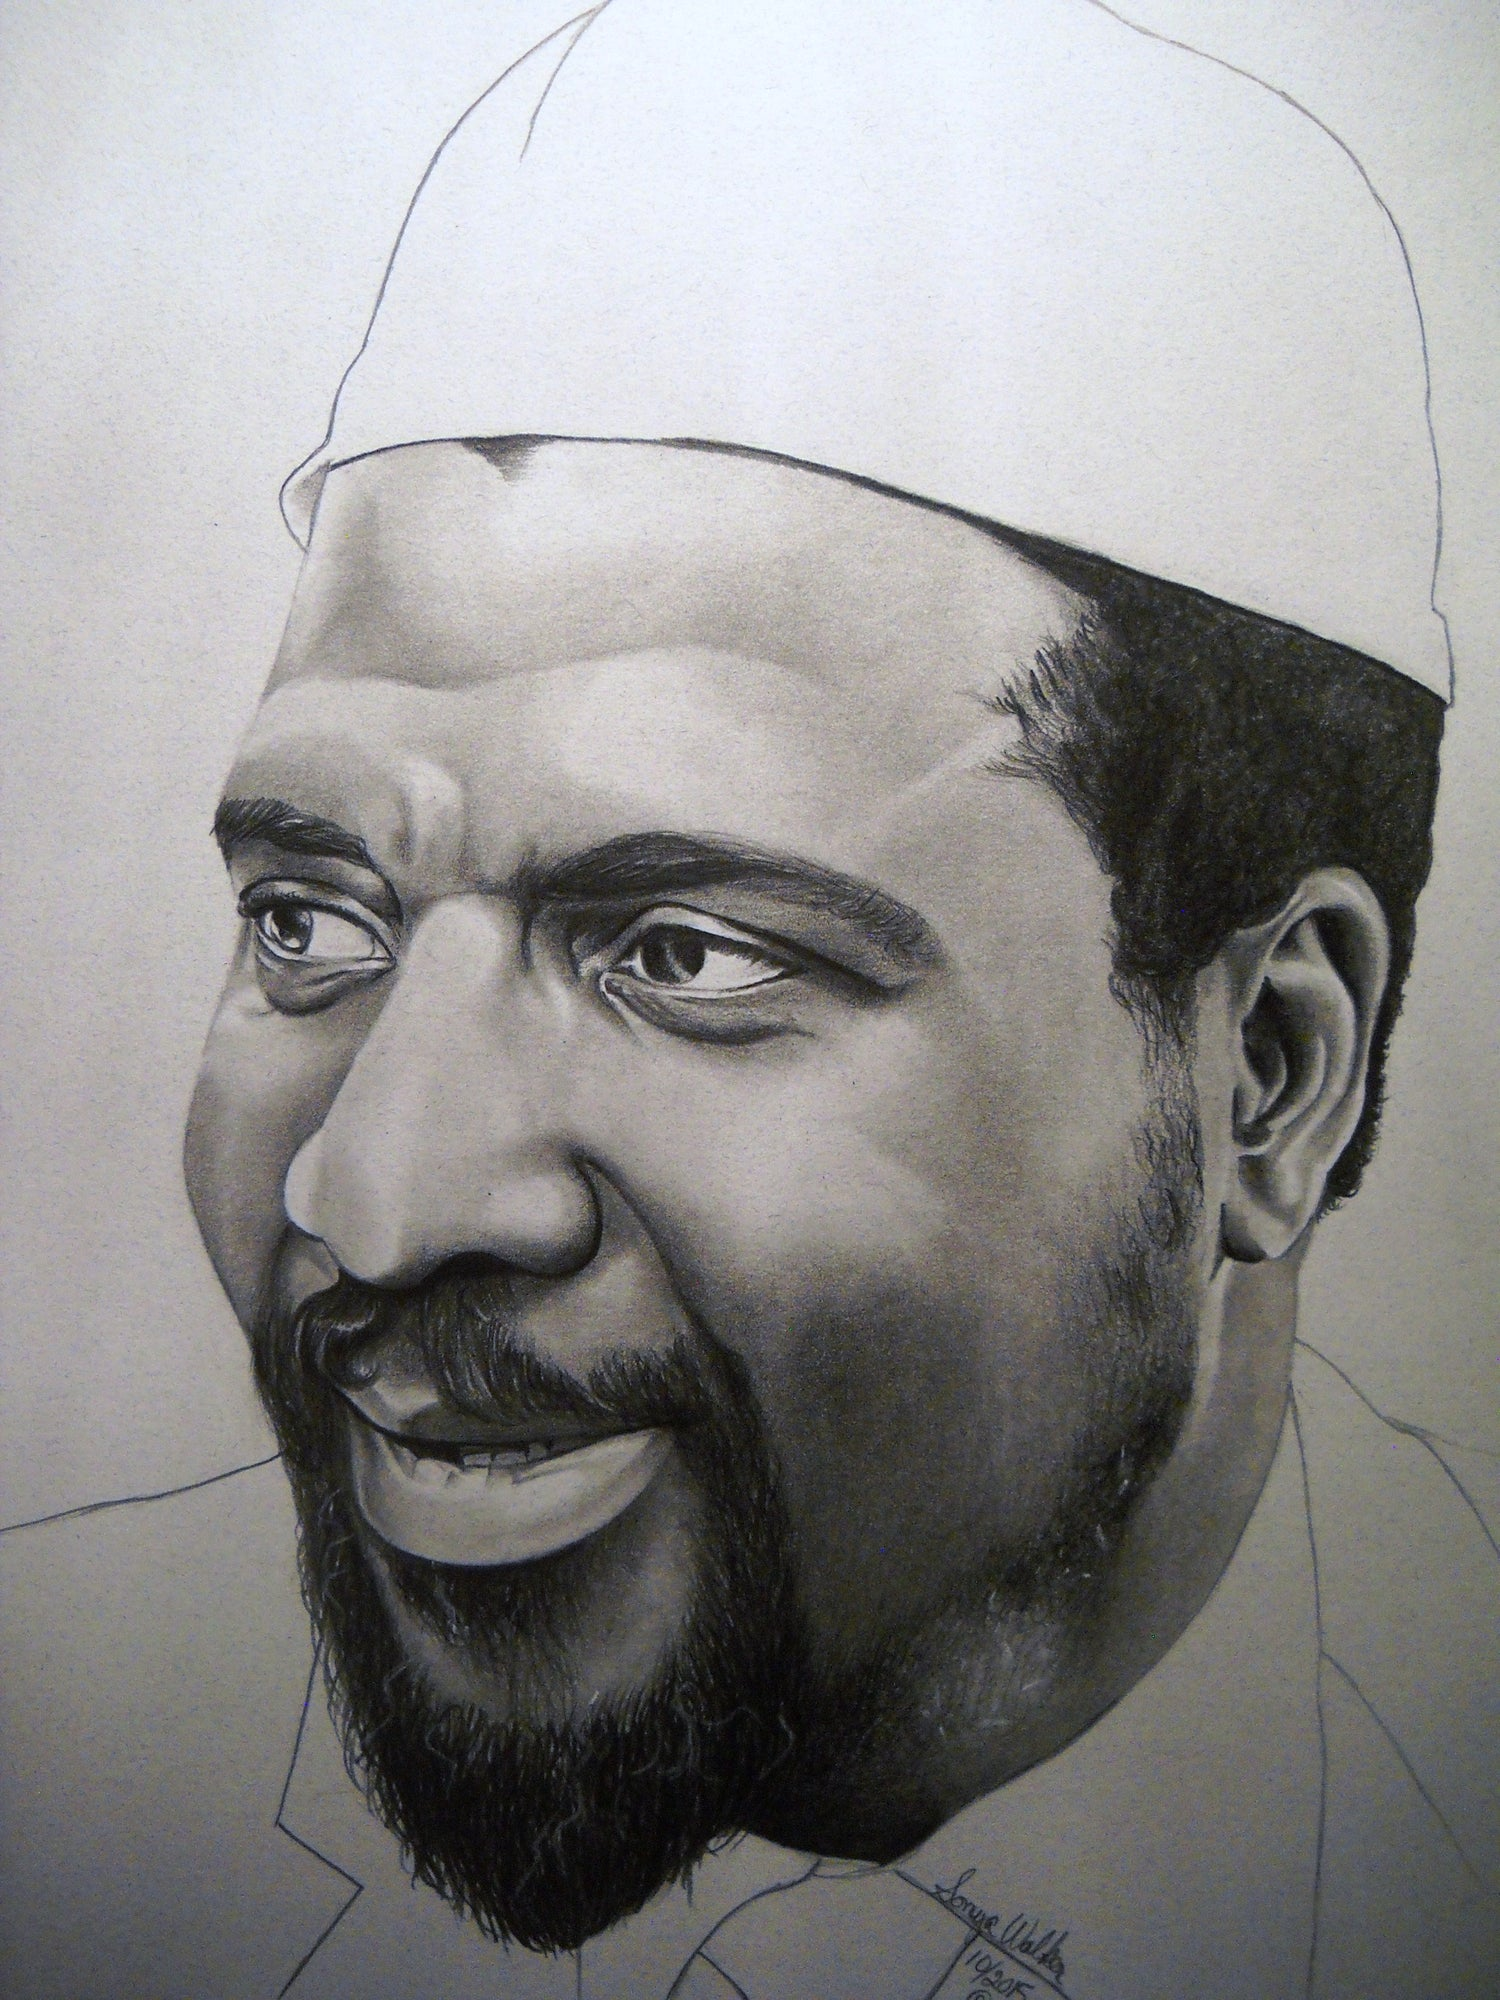 Image of Thelonious